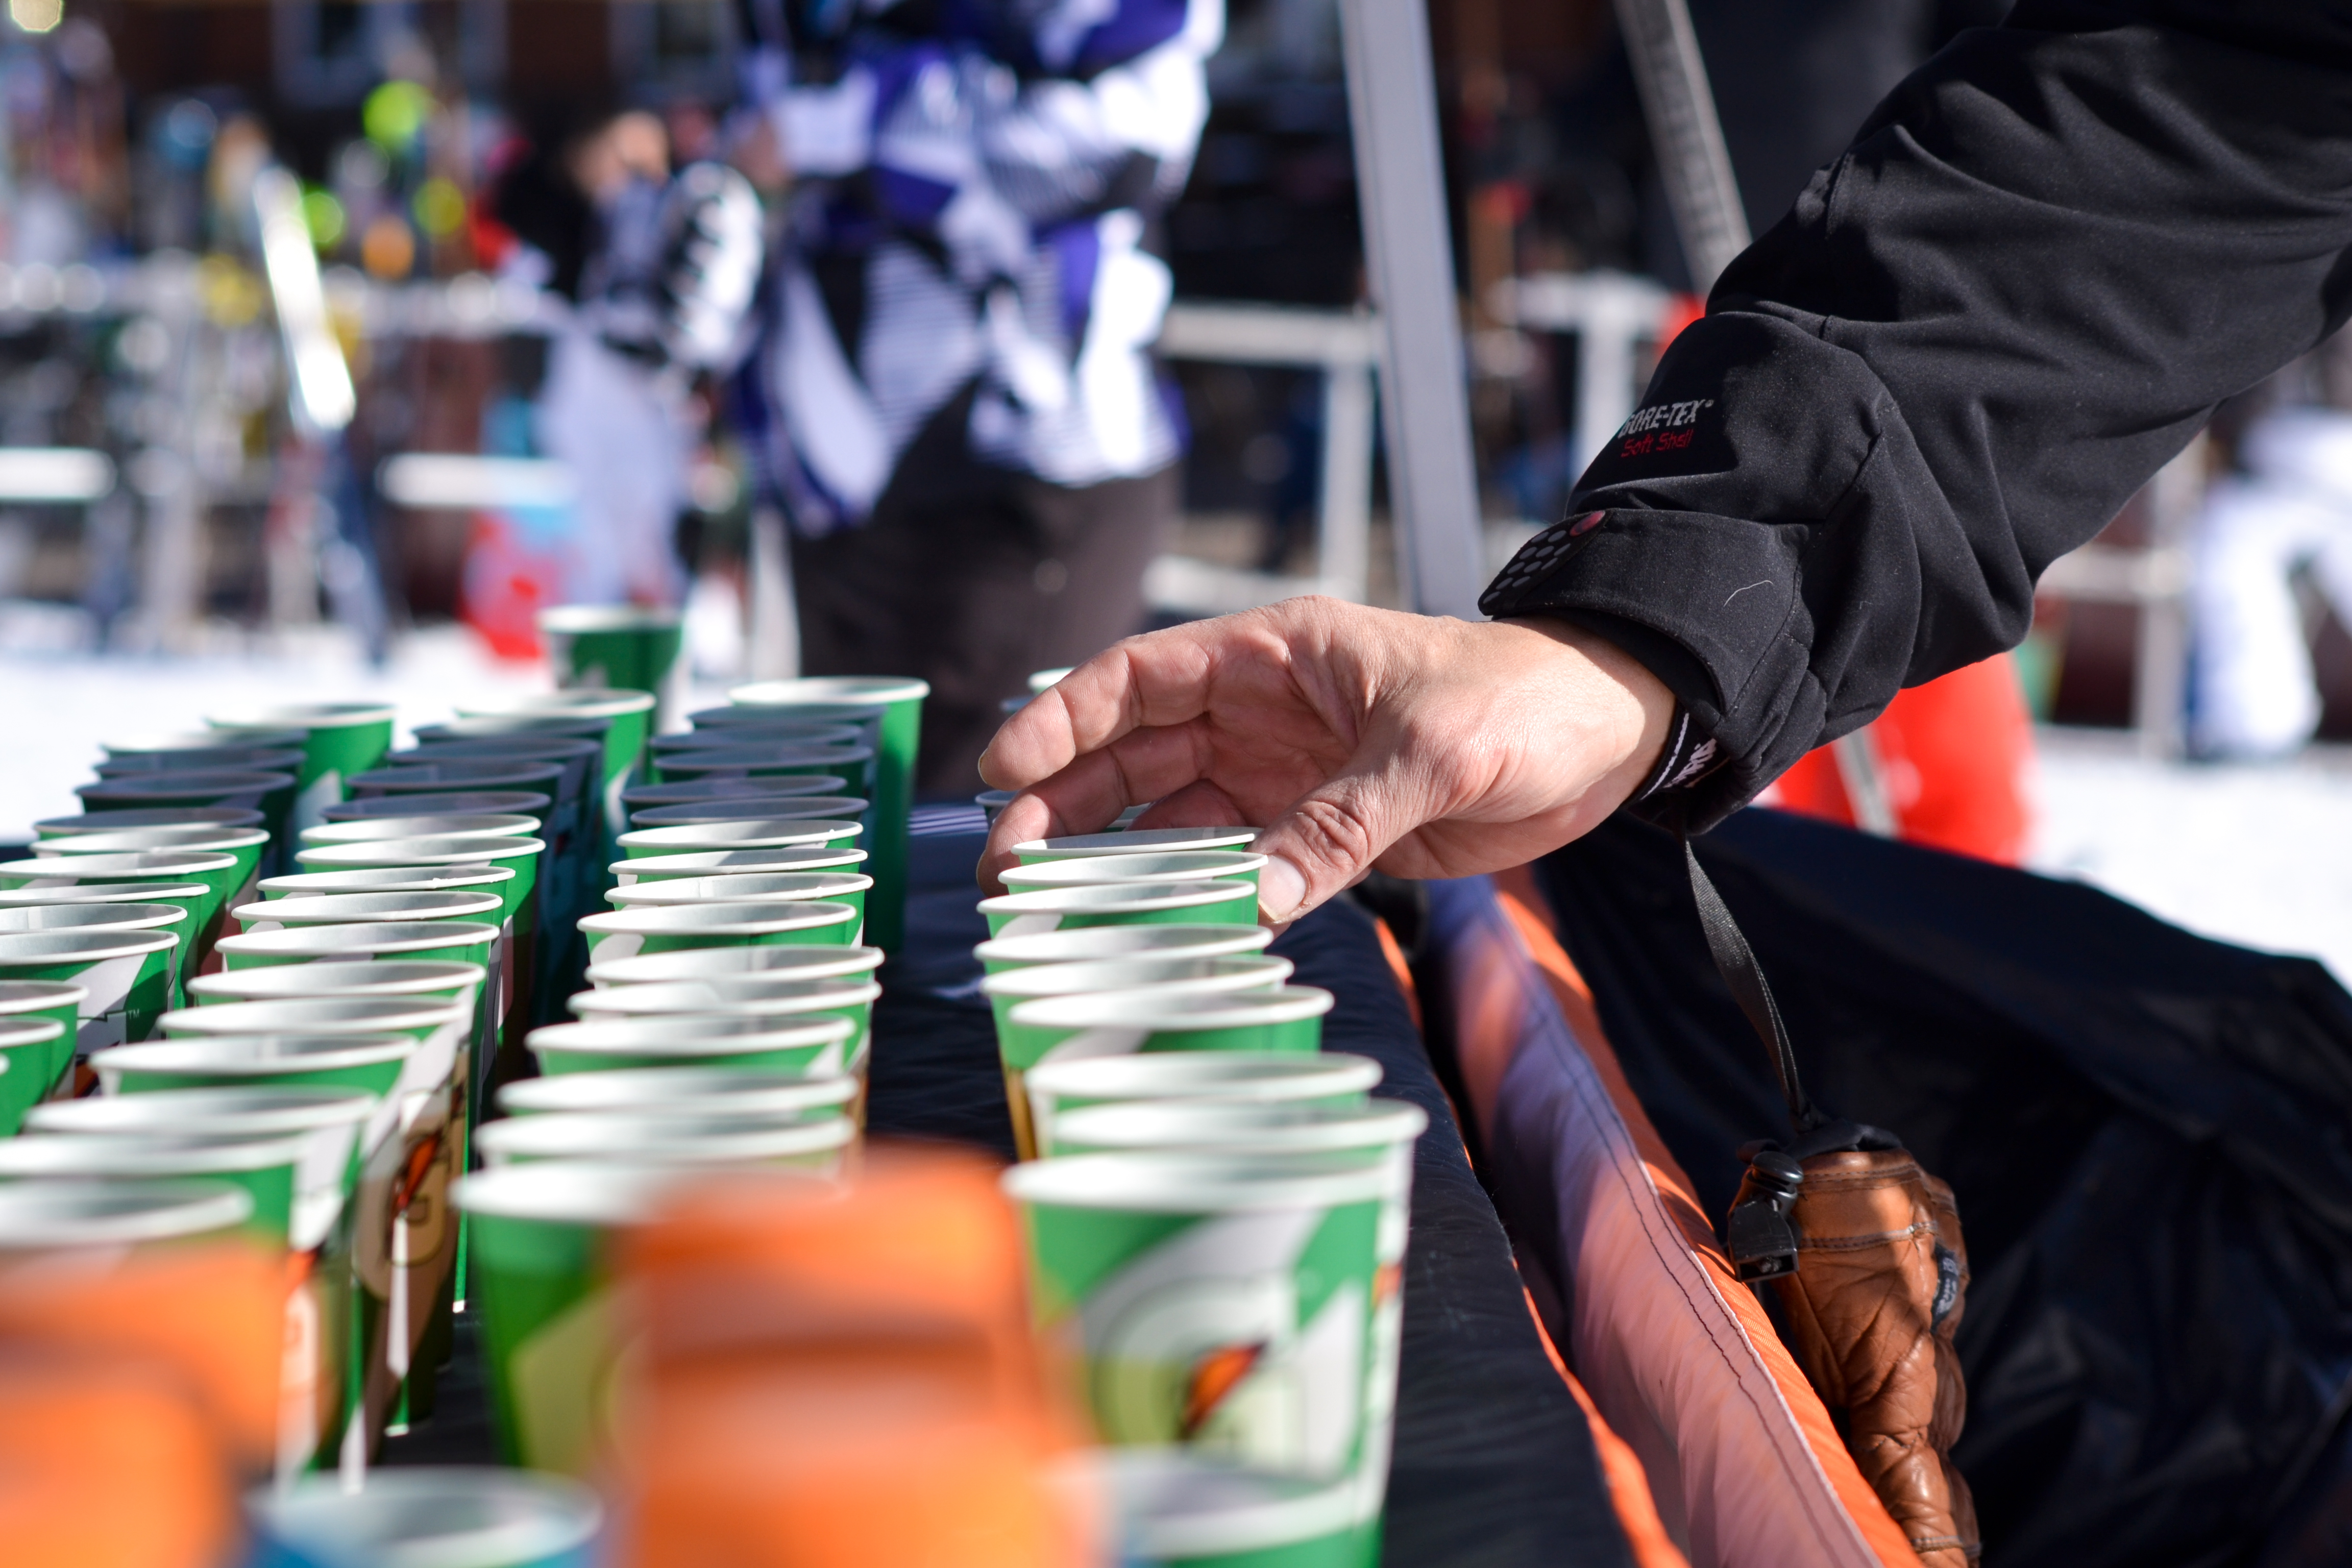 Gatorade came out to help keep people hydrated